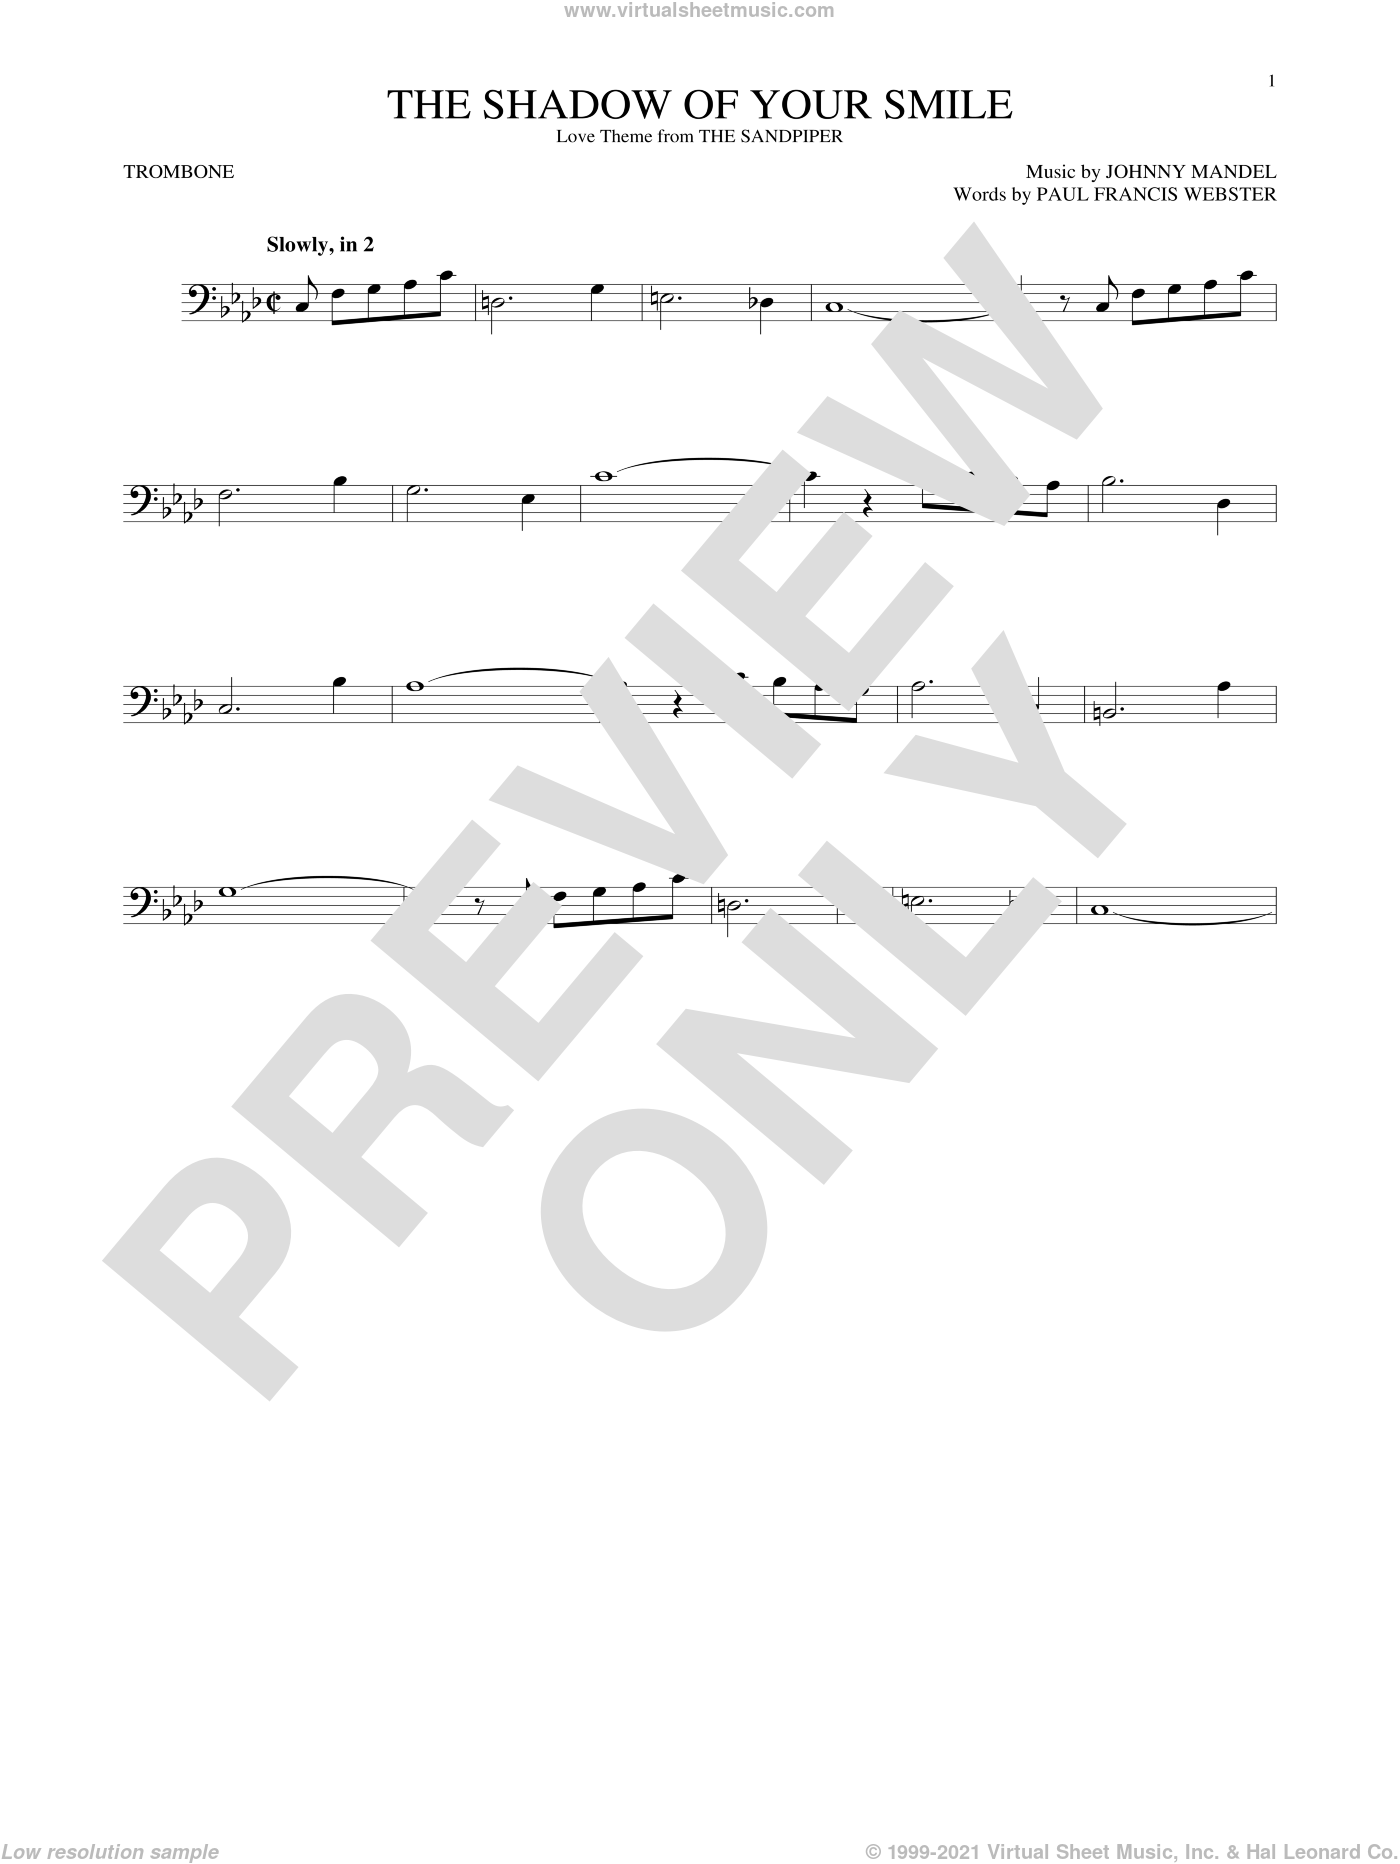 The Shadow Of Your Smile sheet music for trombone solo by Paul Francis Webster and Johnny Mandel, intermediate skill level